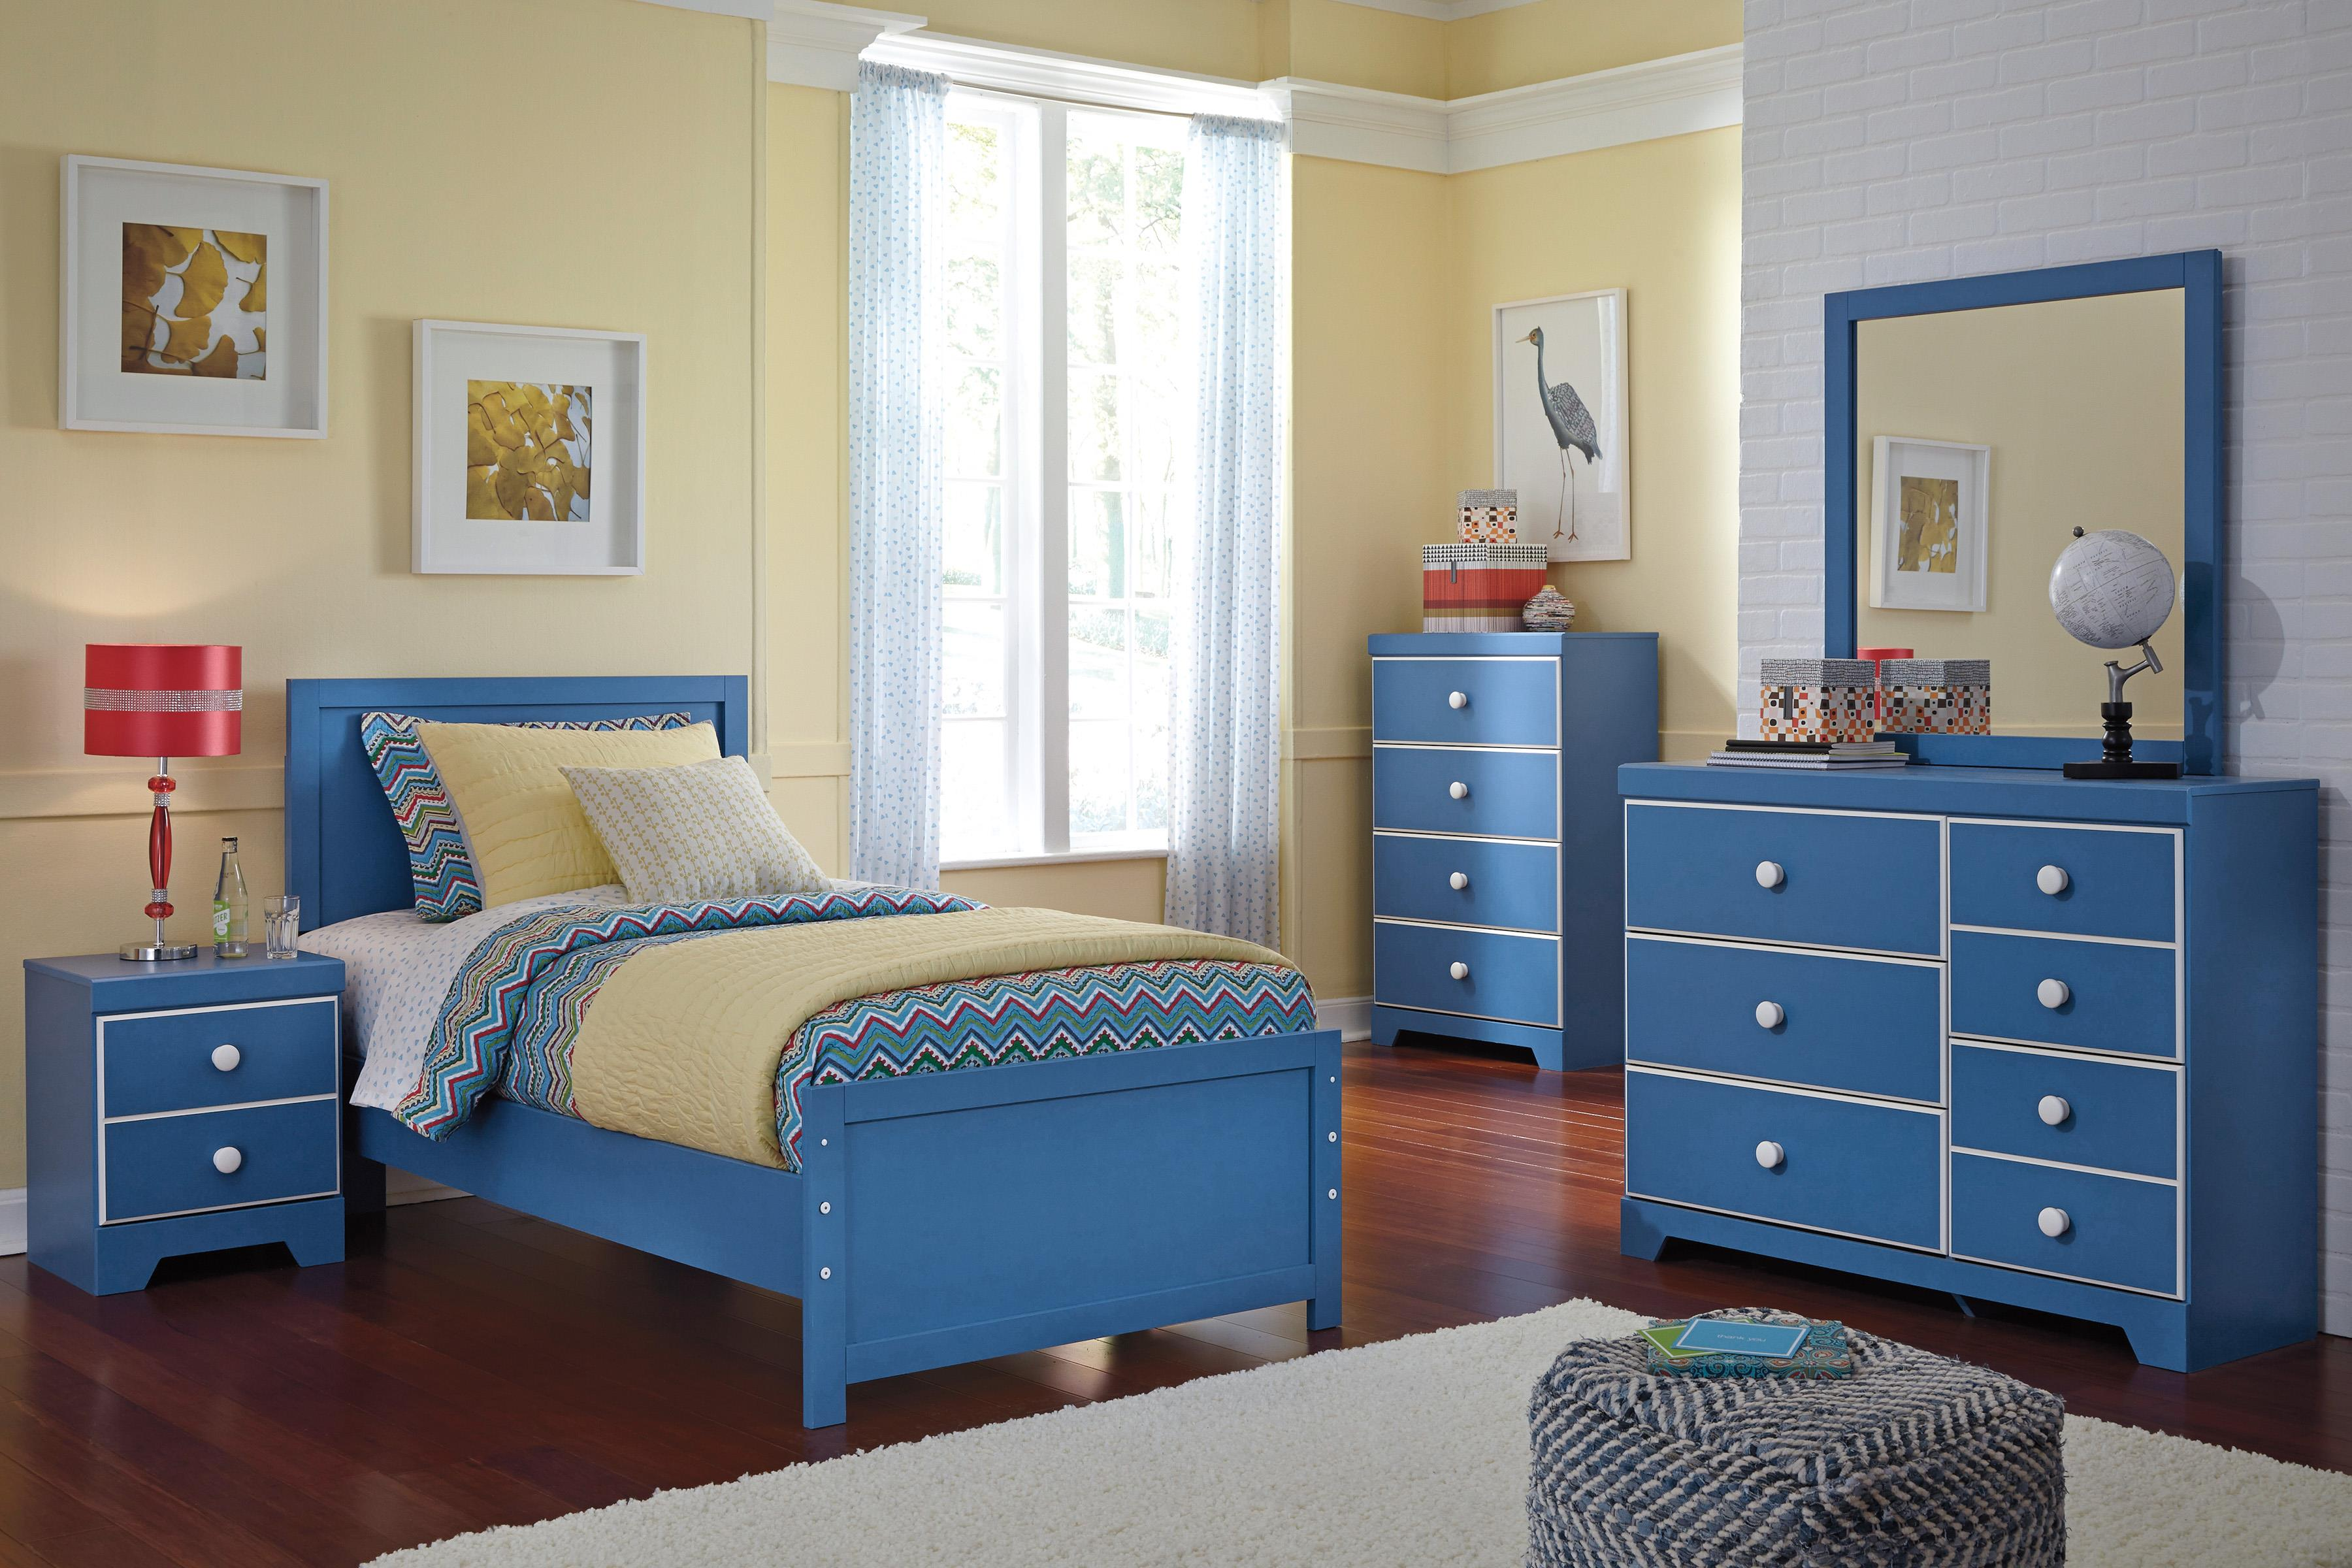 Signature Design by Ashley Bronilly Twin Bedroom Group - Item Number: B045 T Bedroom Group 1